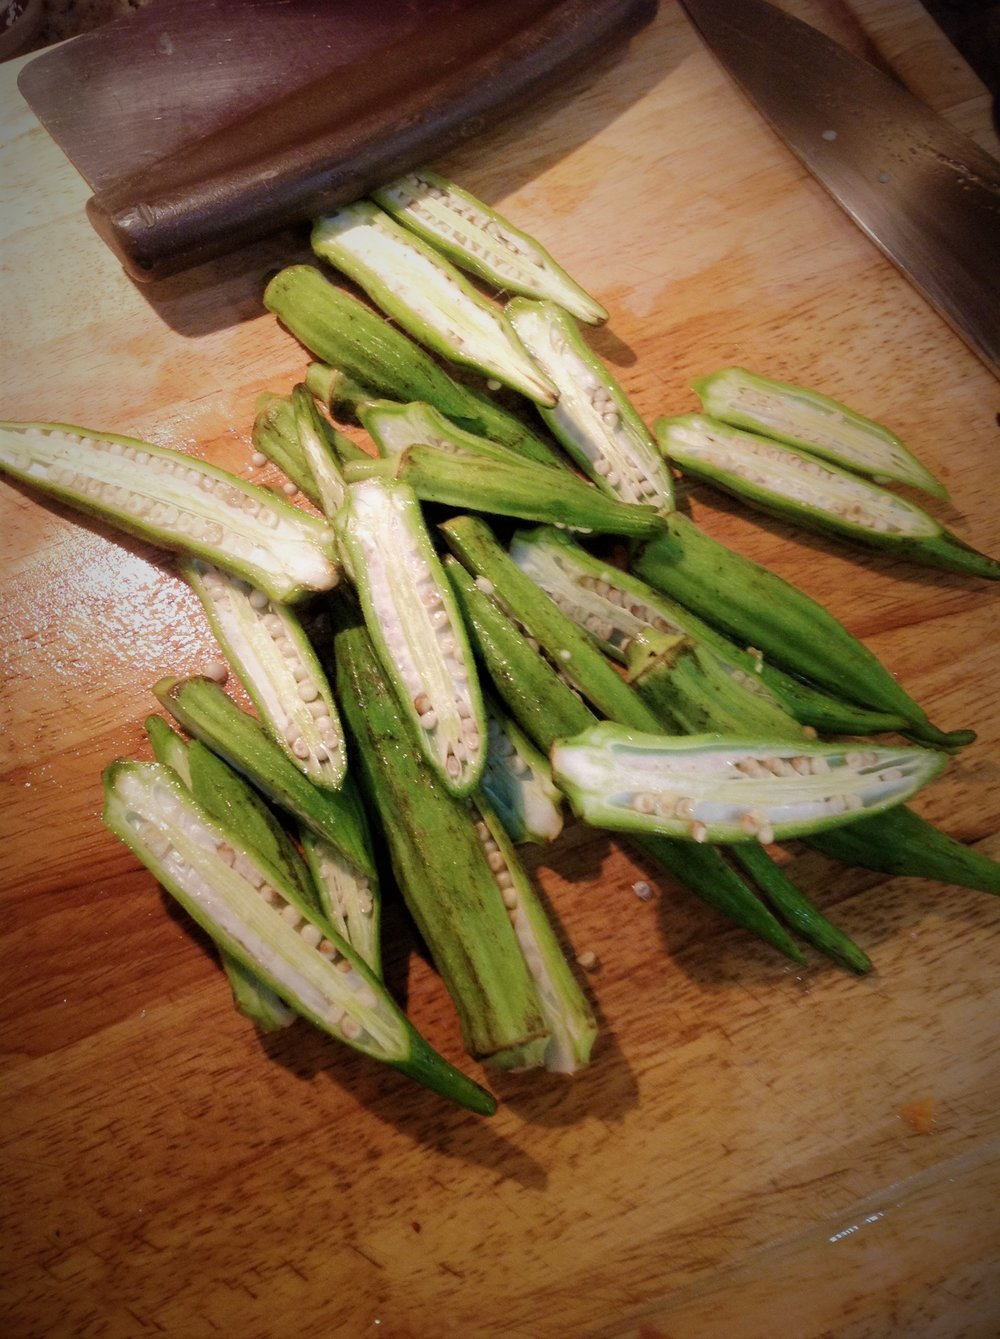 Chef's Tip for Flavor:  Cut the okra in half length-wise for beautiful, large pieces.  This will give help retain some of the crisp texture of the okra, without letting it get too slimy